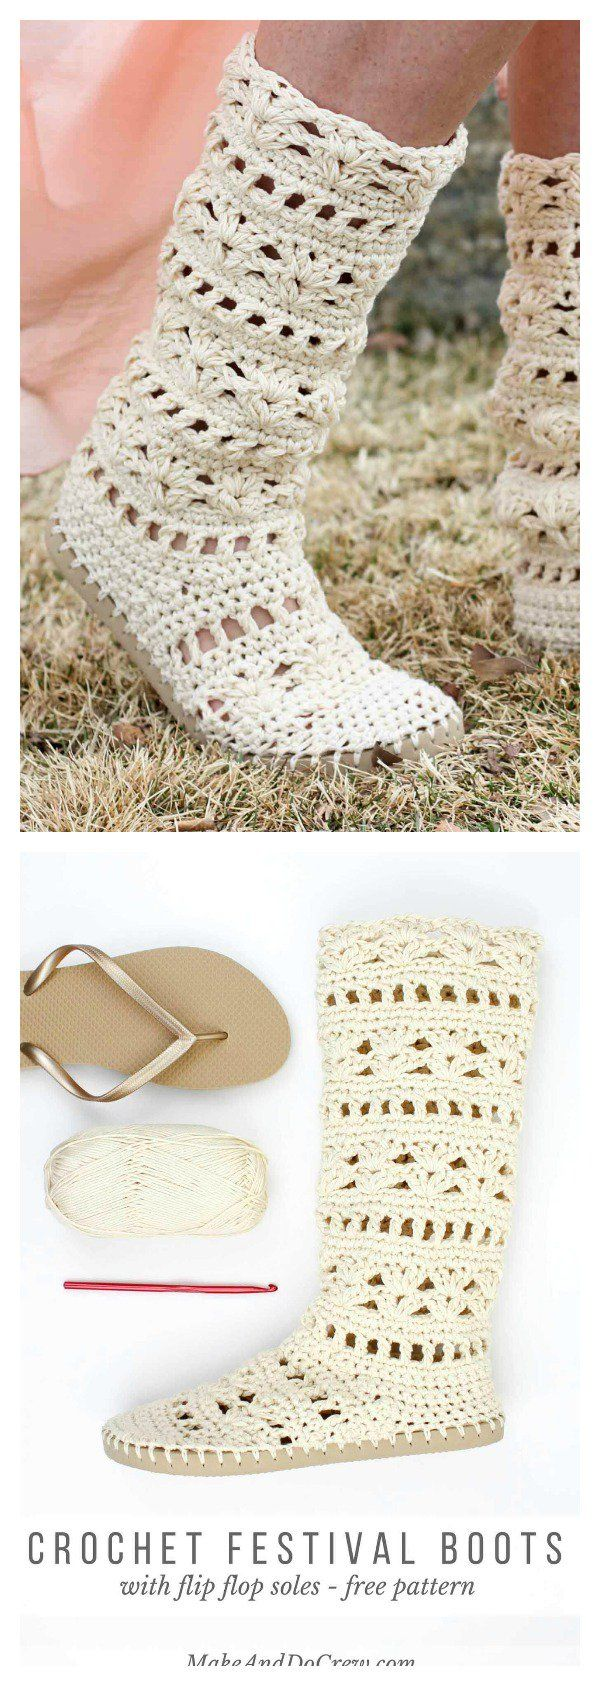 How to Crochet Slippers with Flip Flop Soles   Zapatillas, Ganchillo ...